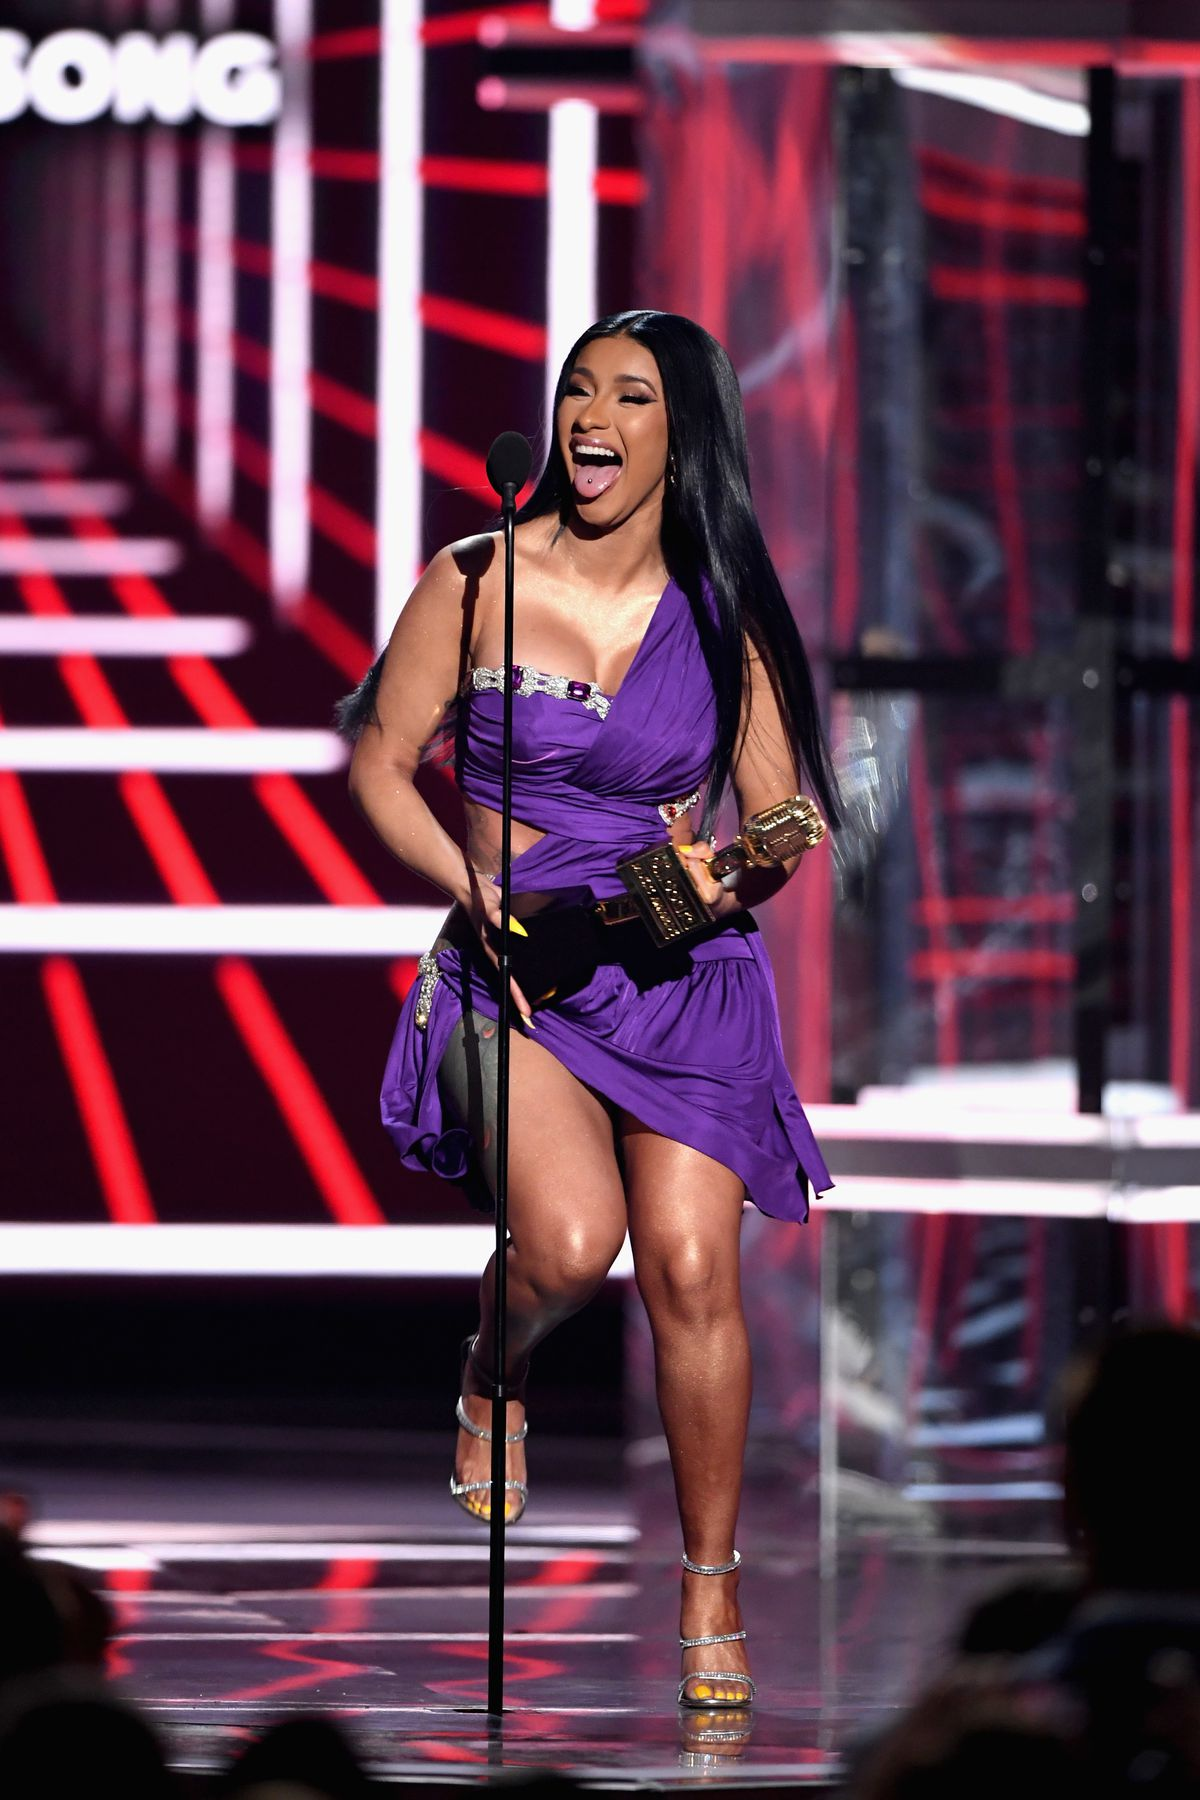 """Cardi B accepts Top Hot 100 Song for """"Girls Like You"""" (Maroon 5 featuring Cardi B) onstage during the 2019 Billboard Music Awards at MGM Grand Garden Arena on May 1, 2019 in Las Vegas, Nevada.   Ethan Miller/Getty Images"""